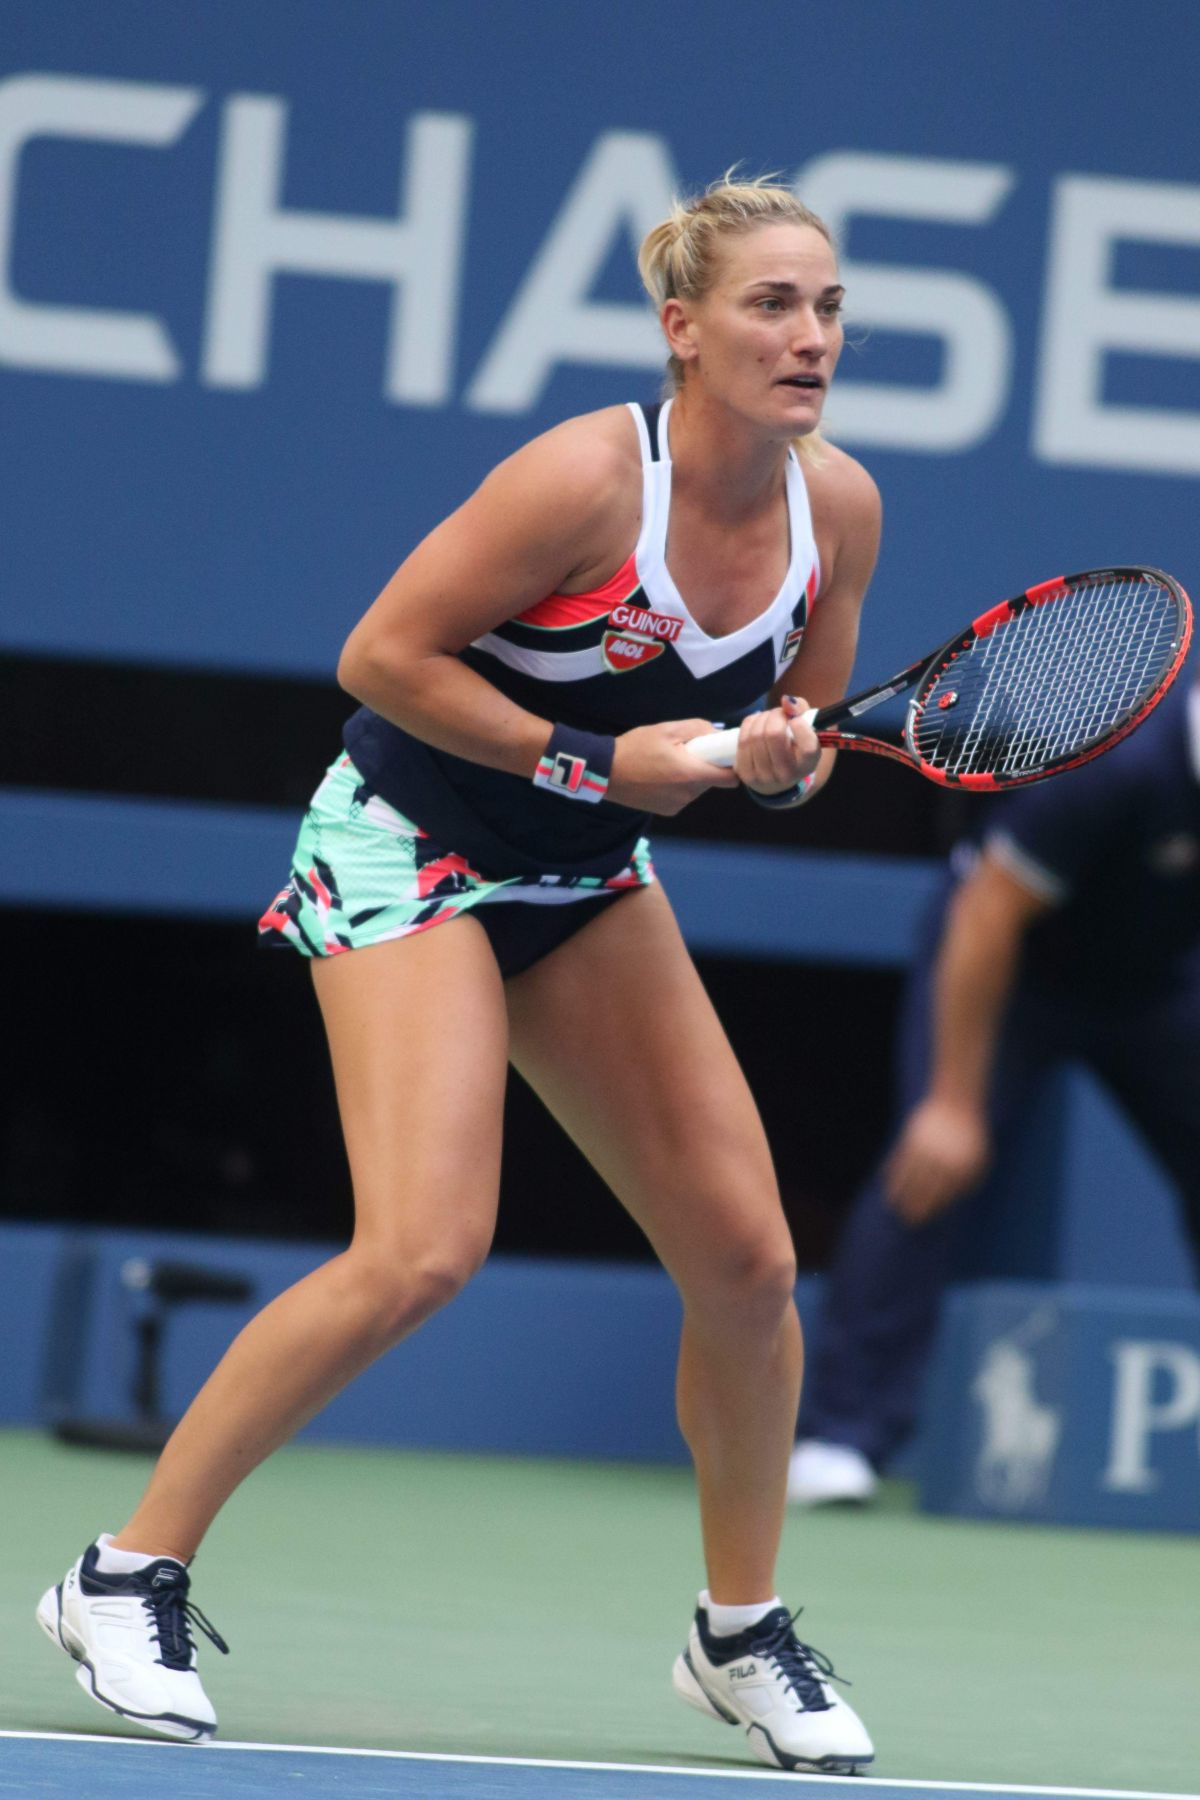 TIMEA BABOS at 2017 US Open Tennis Championships 08/30/2017